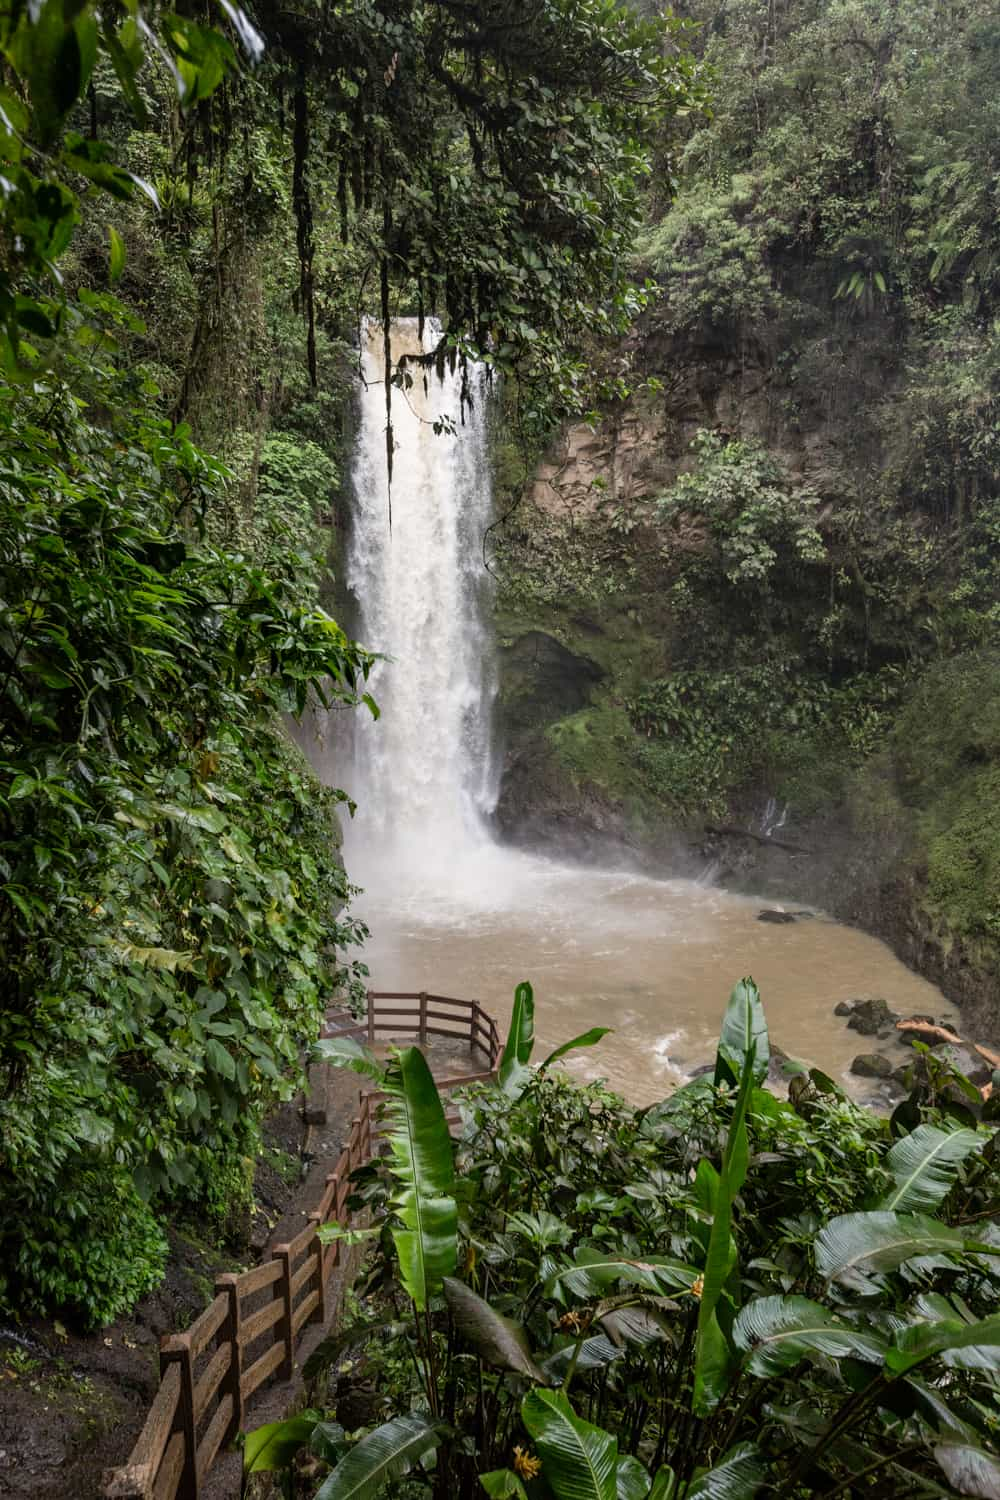 View of Waterfall Platform for elopements and weddings at La Paz Waterfall Gardens.